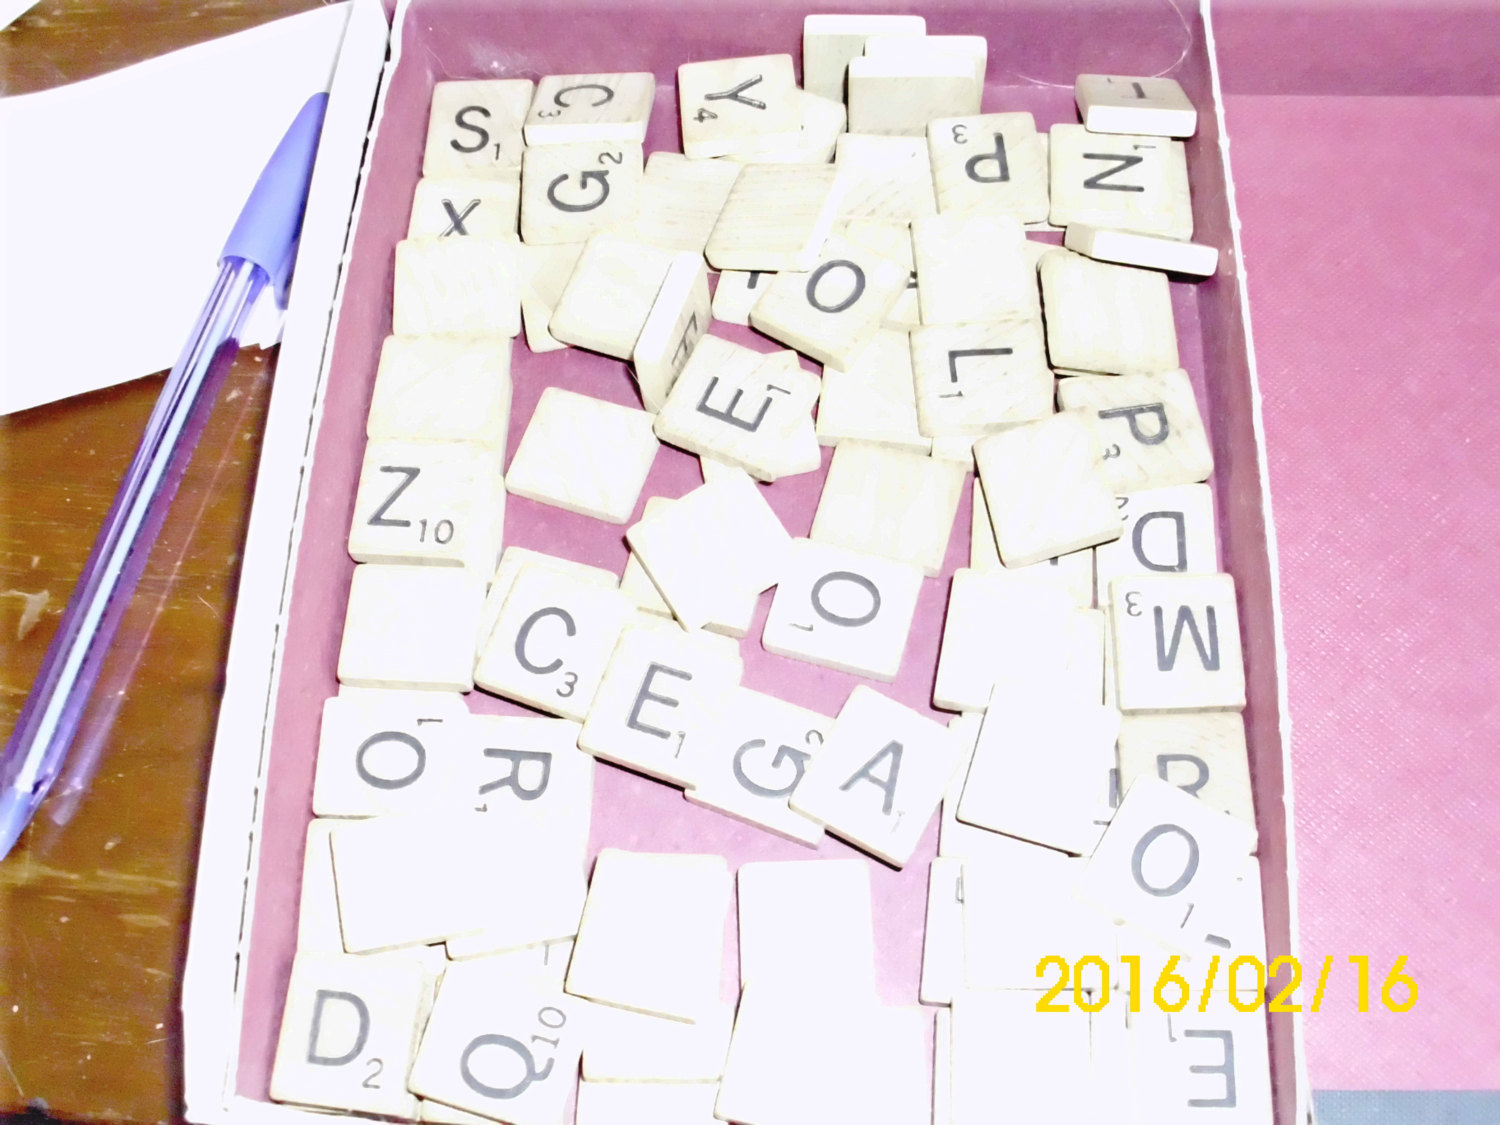 97 Wooden Letters from Scrabble Game for Crafts Re-purpose Re-use